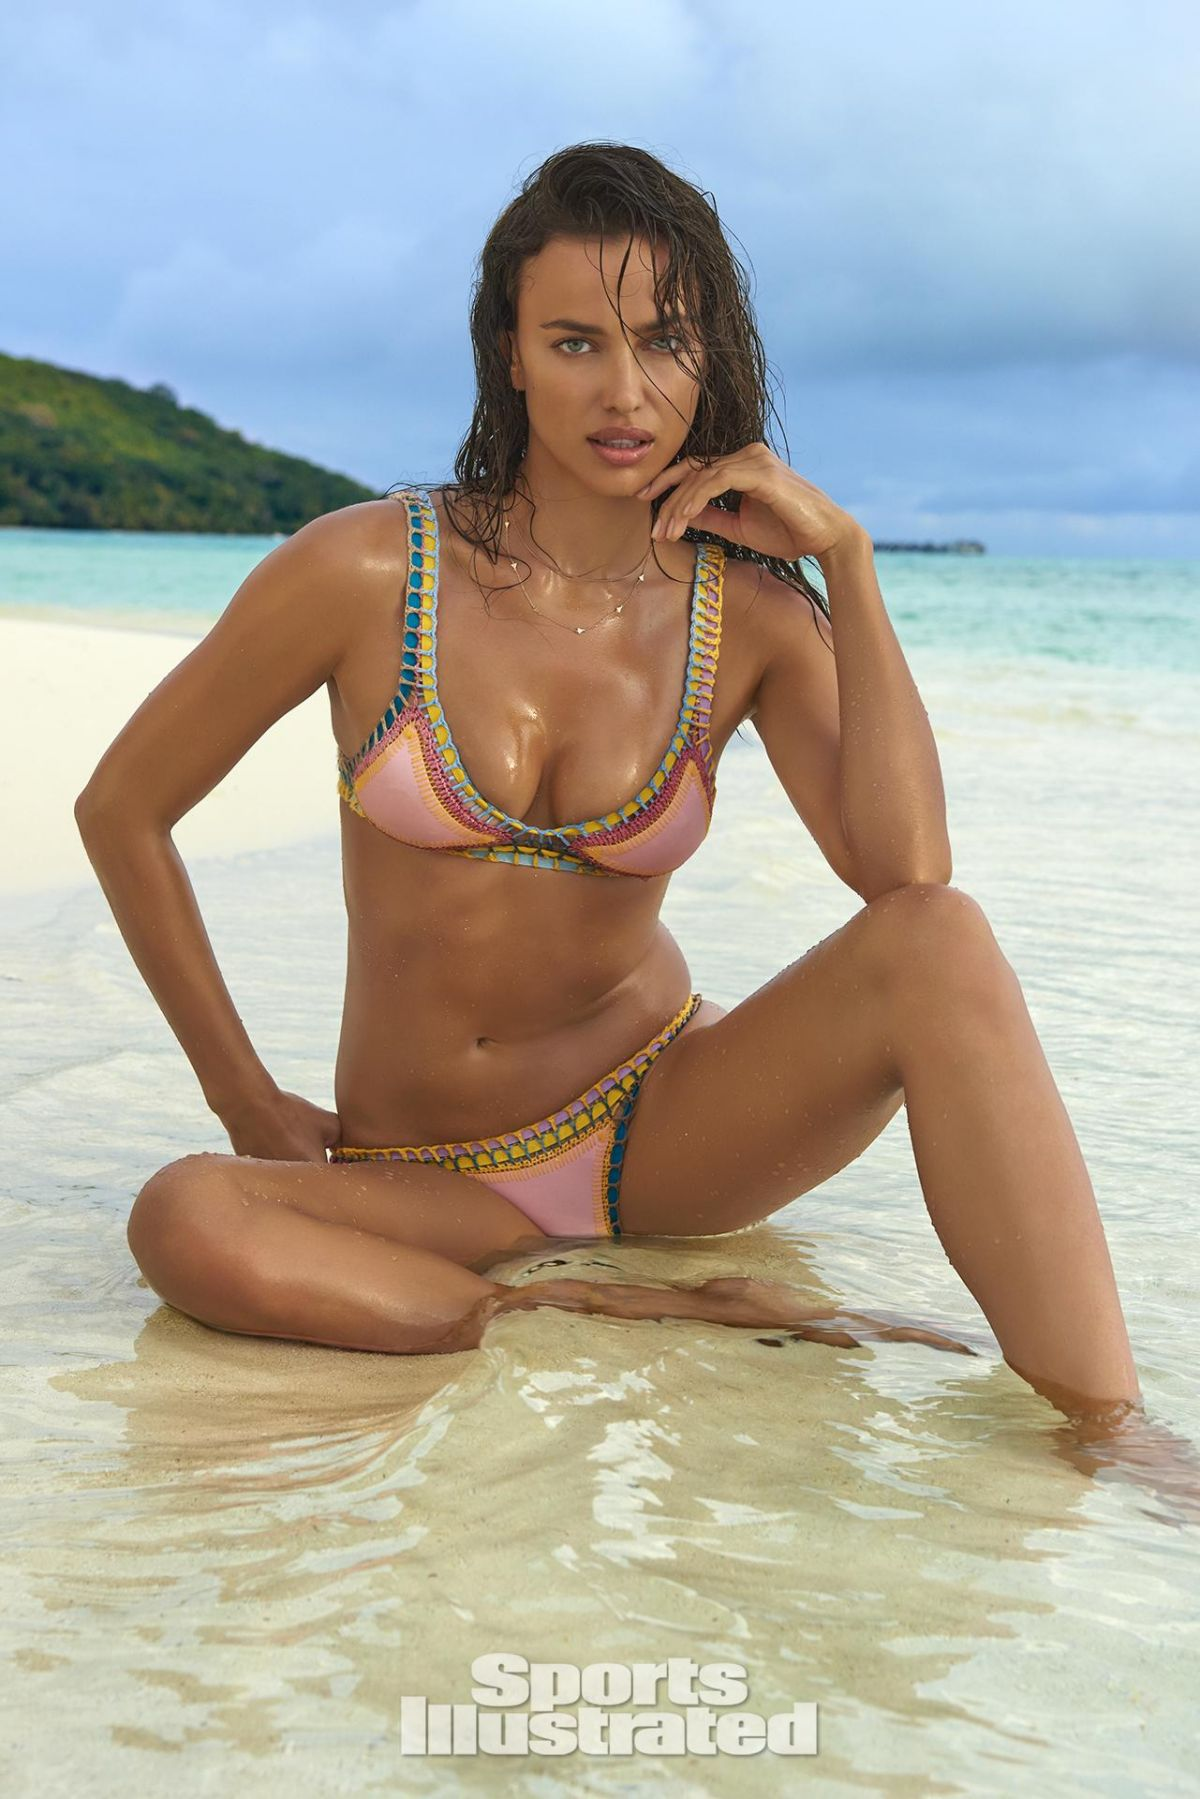 IRINA SHAYK in Sports Illustrated Swimsuit Issue 2016